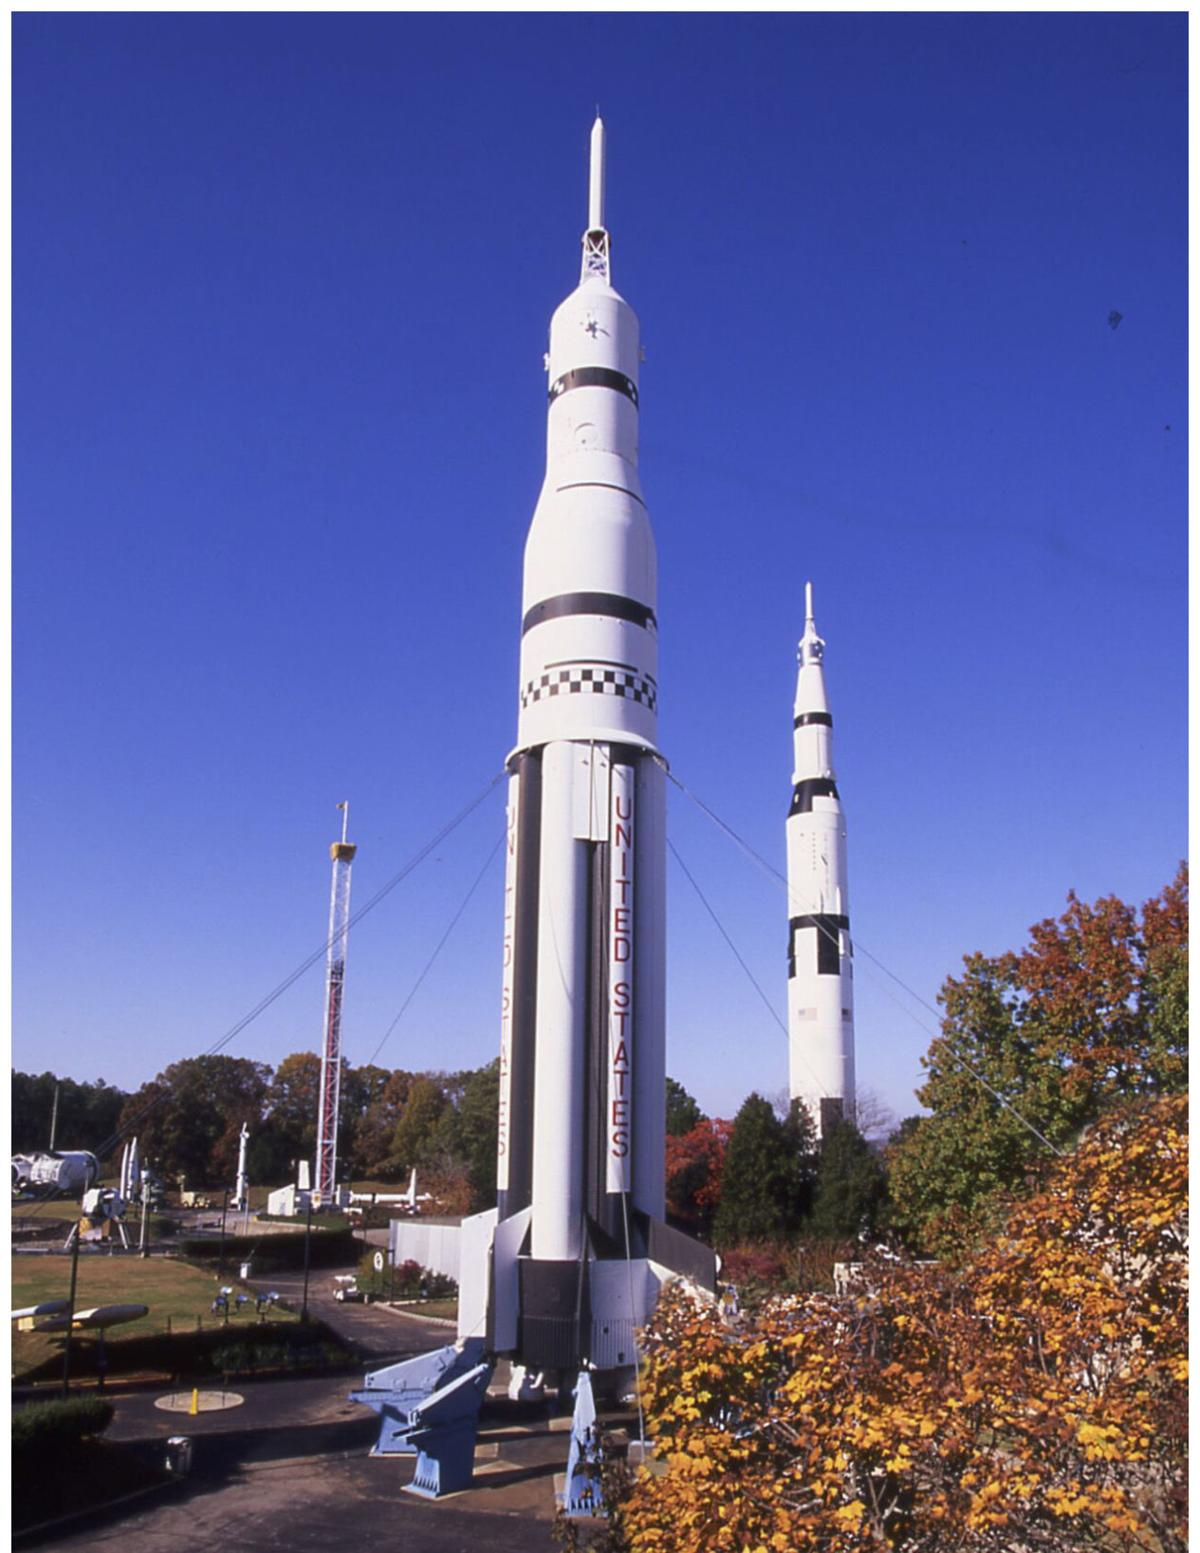 Modelrocket launch to mark 50thanniversary of first moon walk: Rockets on display